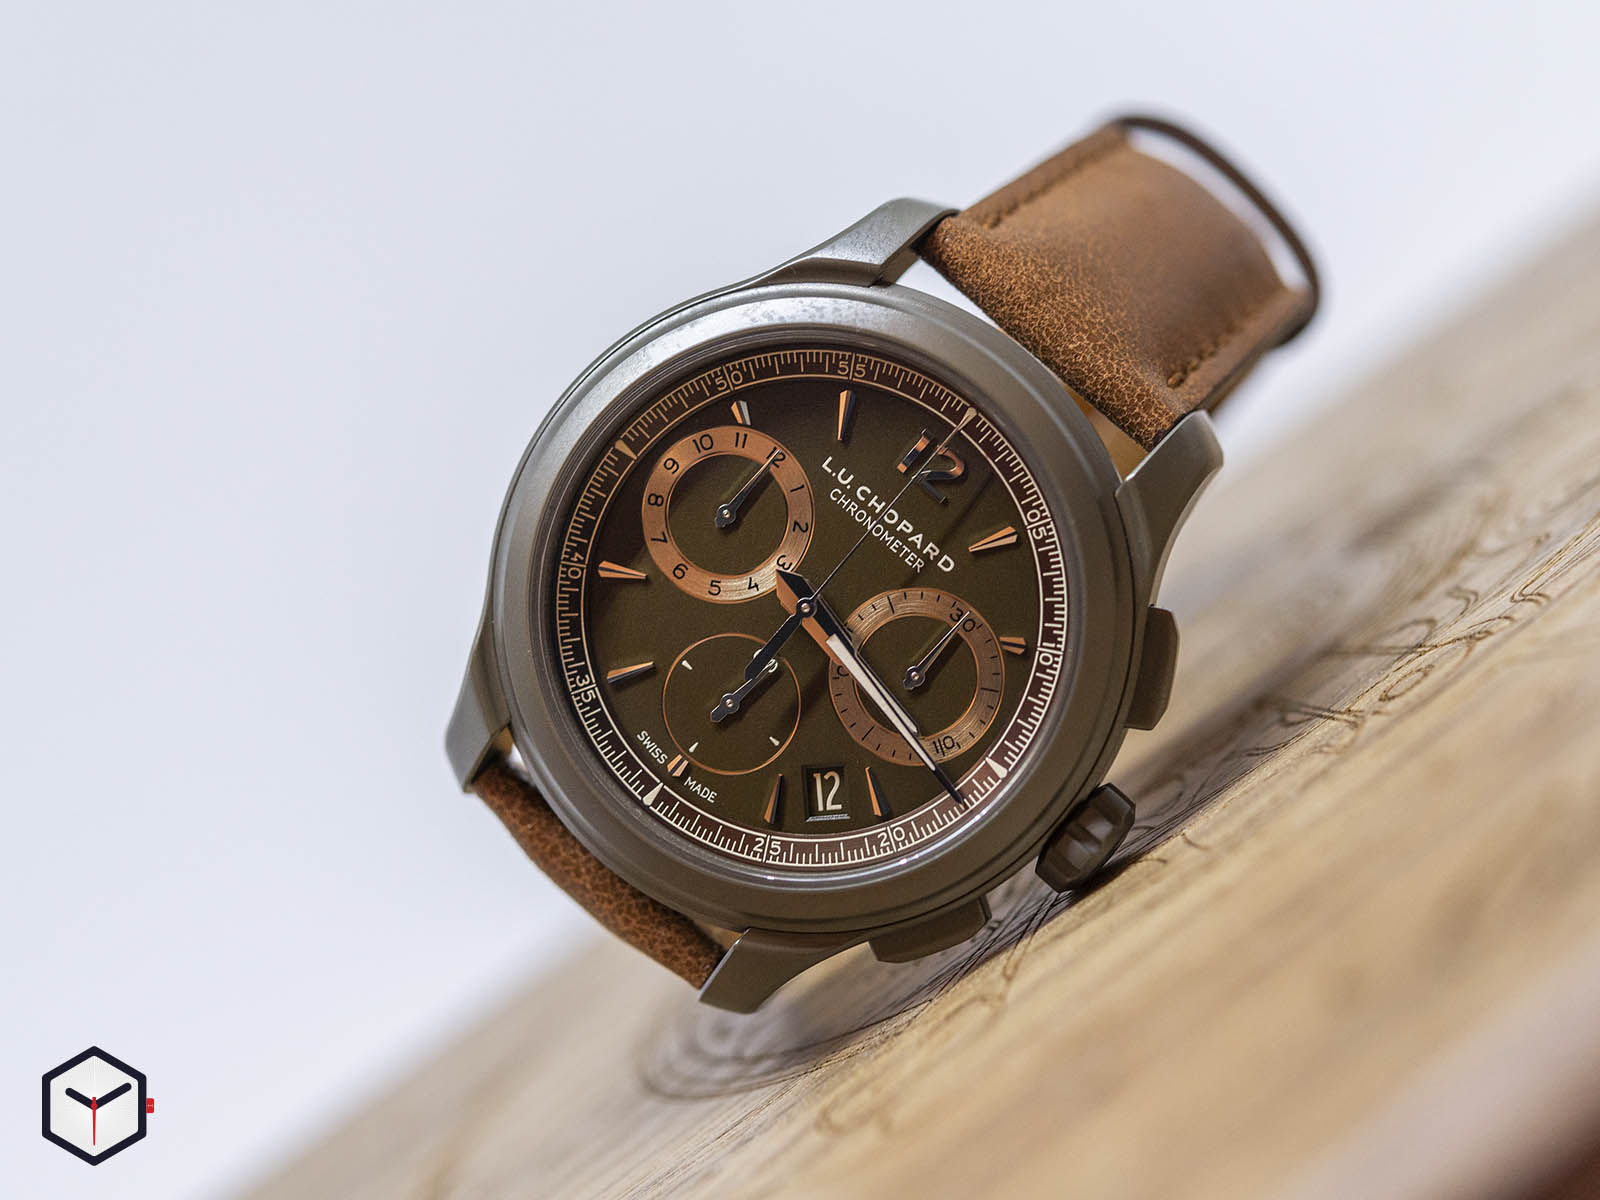 168596-3002-chopard-l-u-c-chrono-one-flyback-1.jpg